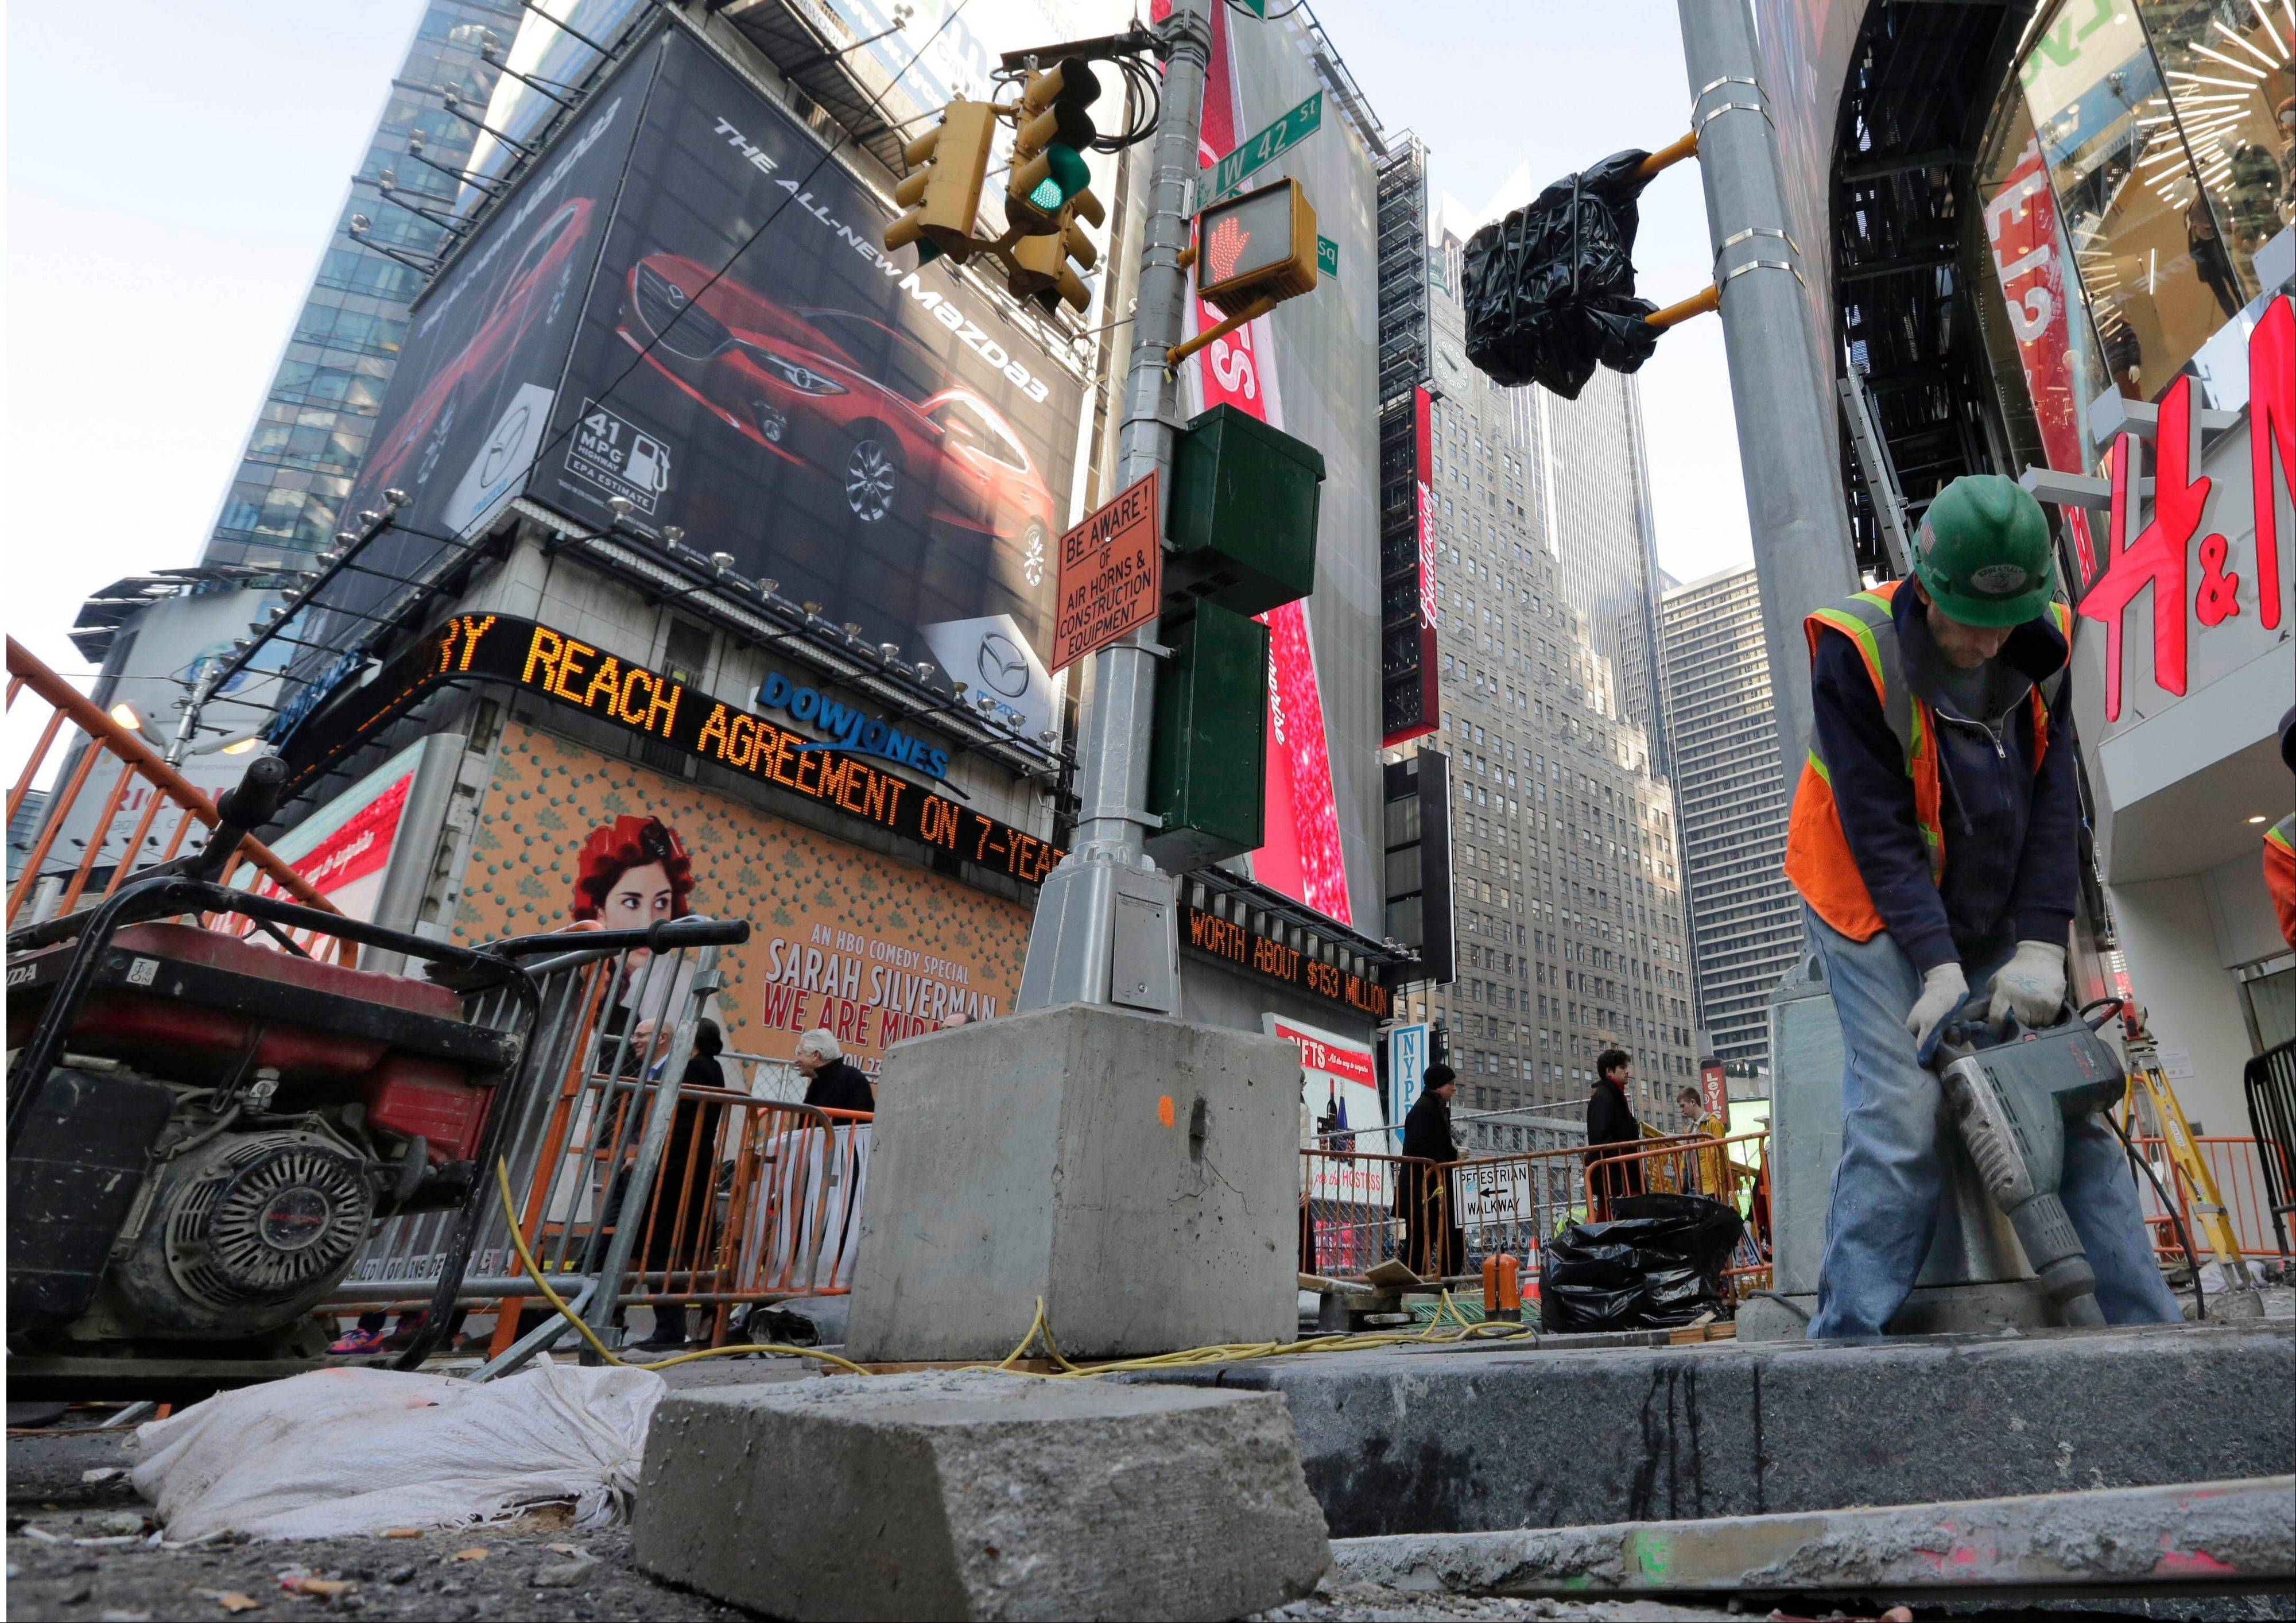 Associated Press/Dec. 4, 2013A workman uses a generator-powered jackhammer in New York's Times Square in New York.